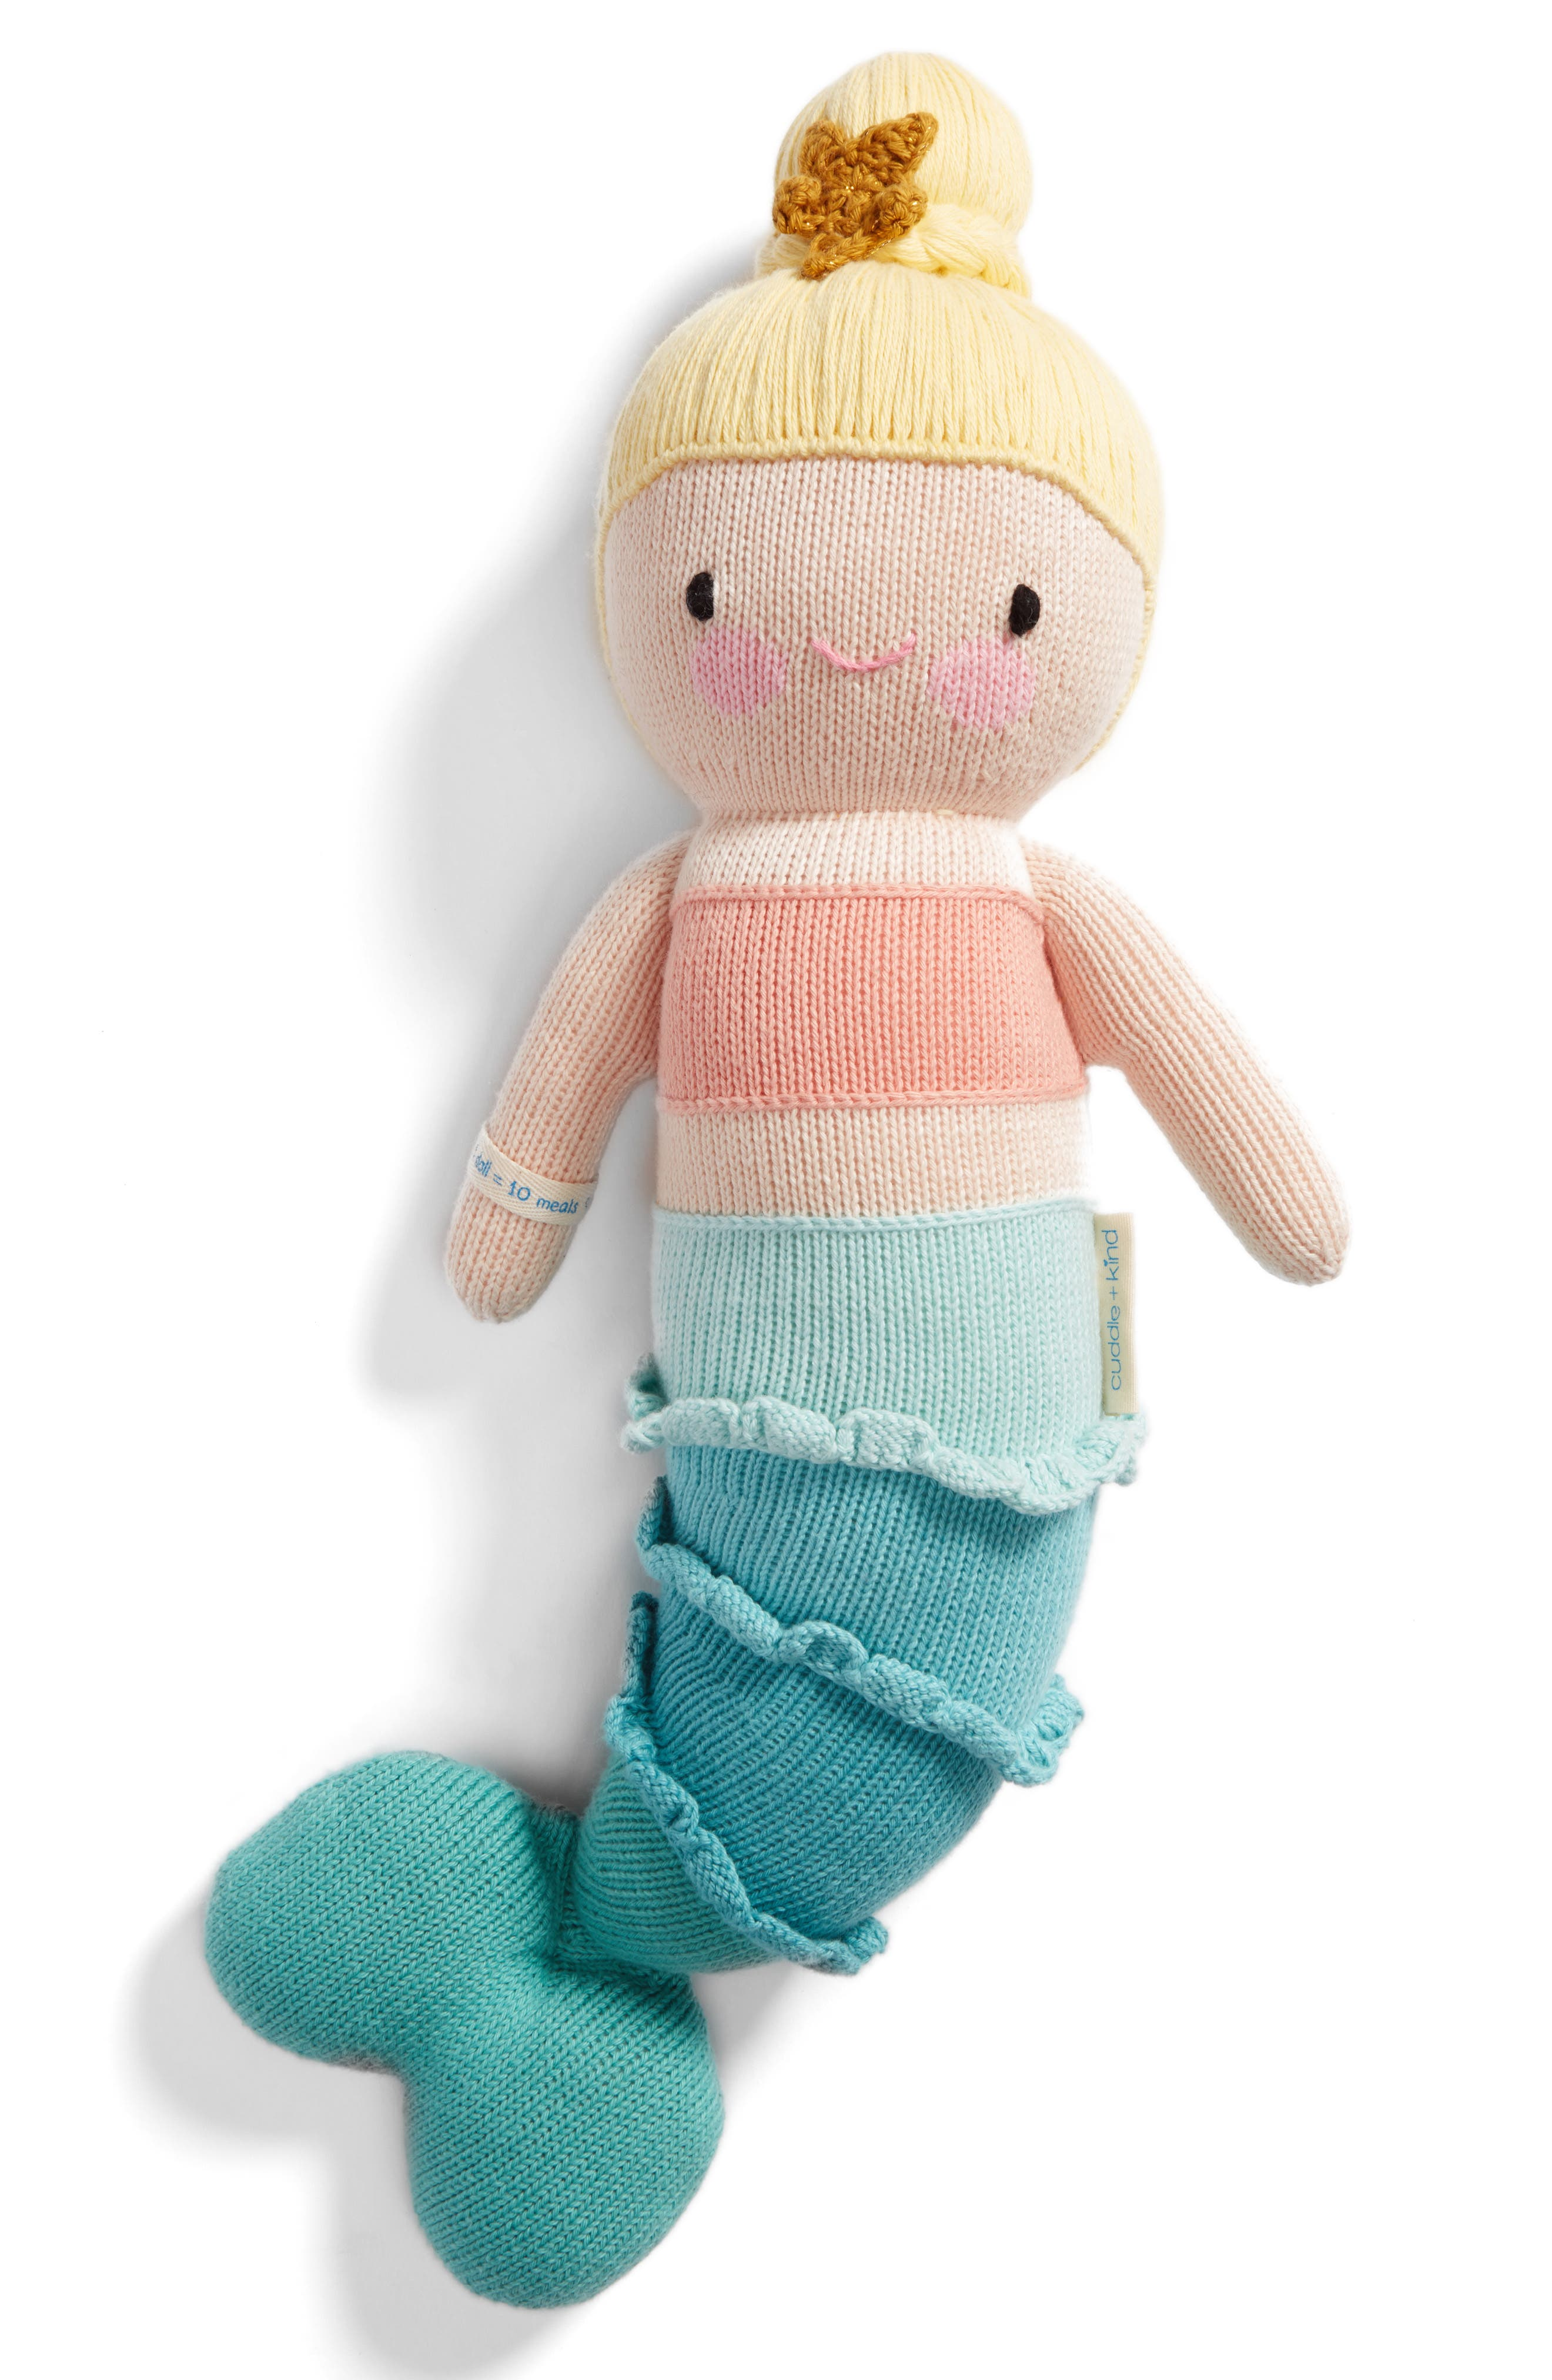 cuddle + kind Skye the Mermaid Knit Doll